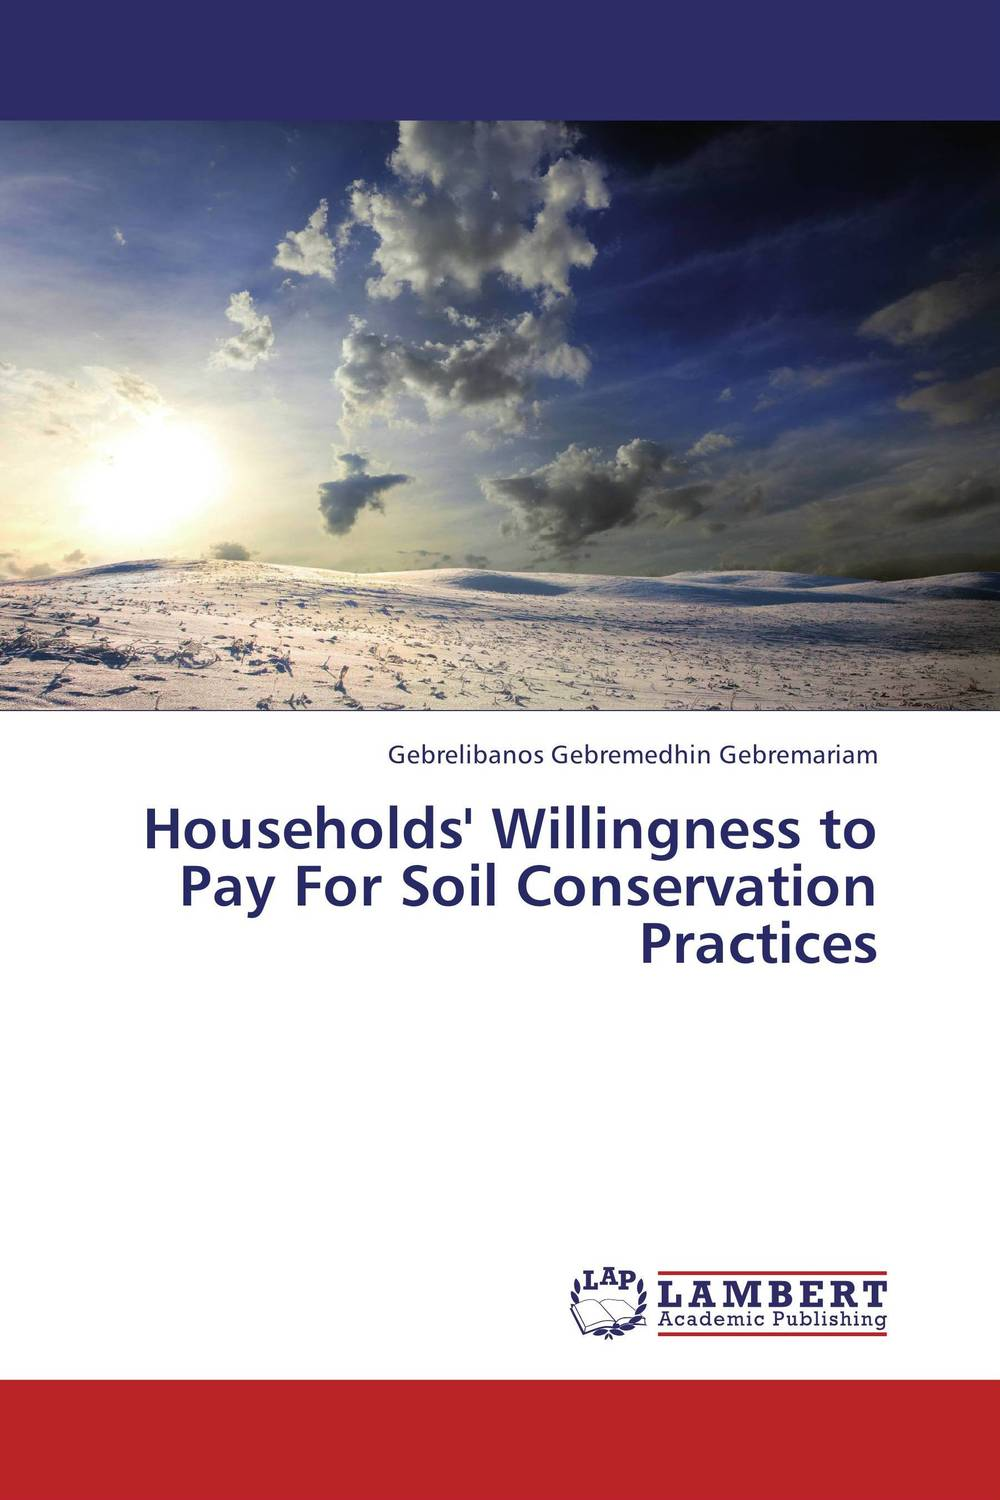 Households' Willingness to Pay For Soil Conservation Practices